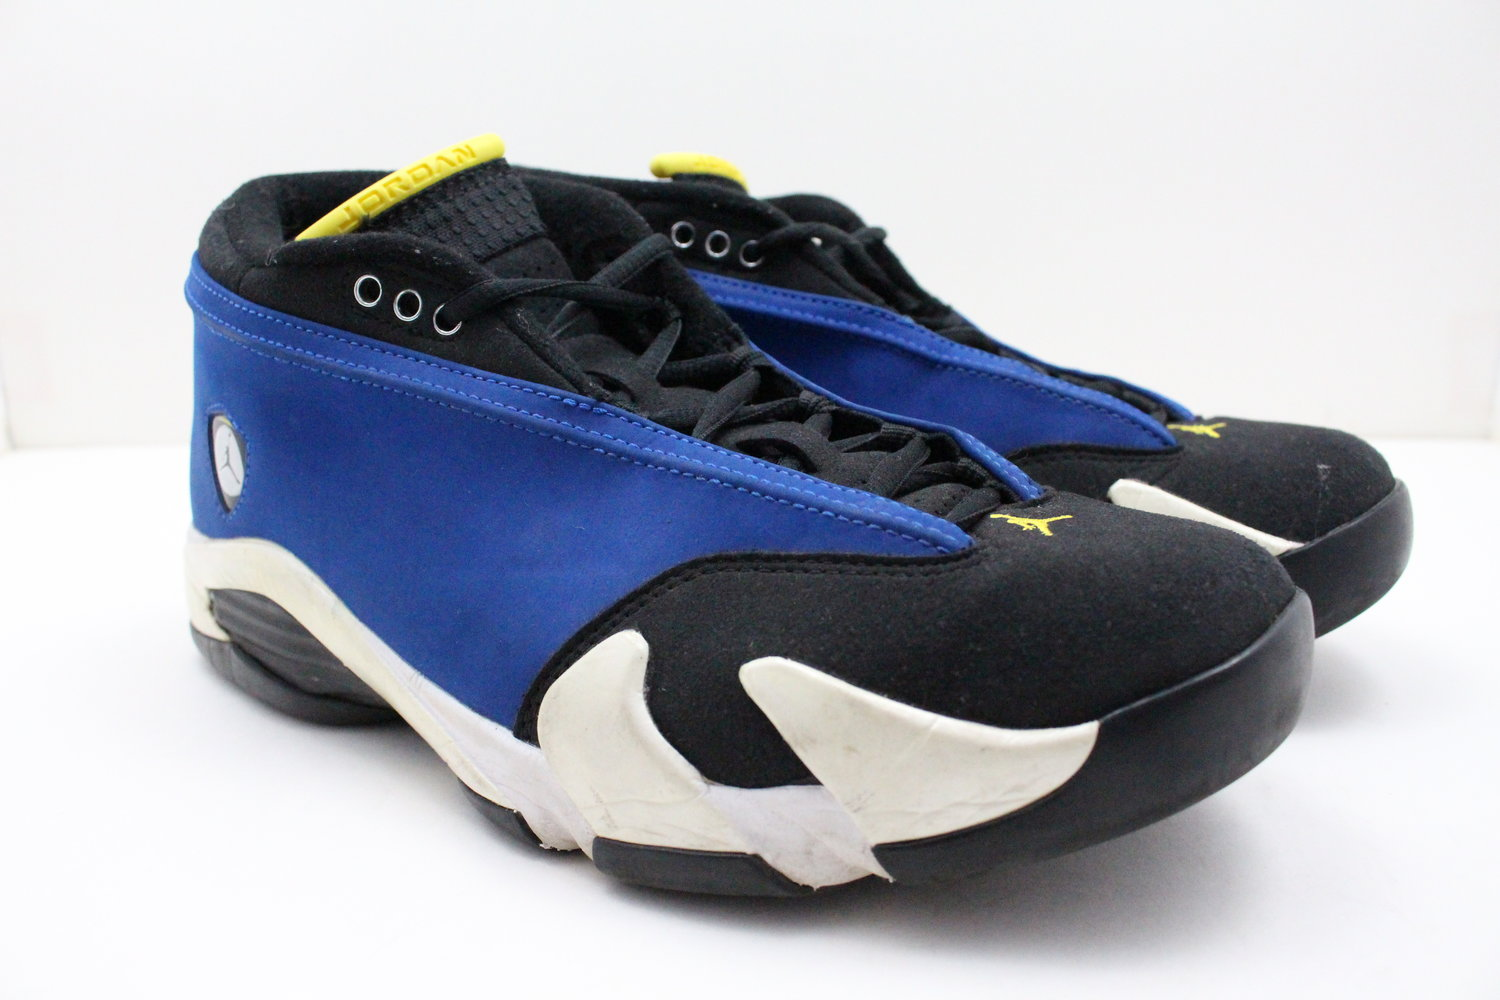 a531f2e5fdc965 US 9 - Nike Air Retro Jordan 14 Laney — Evolution Soles